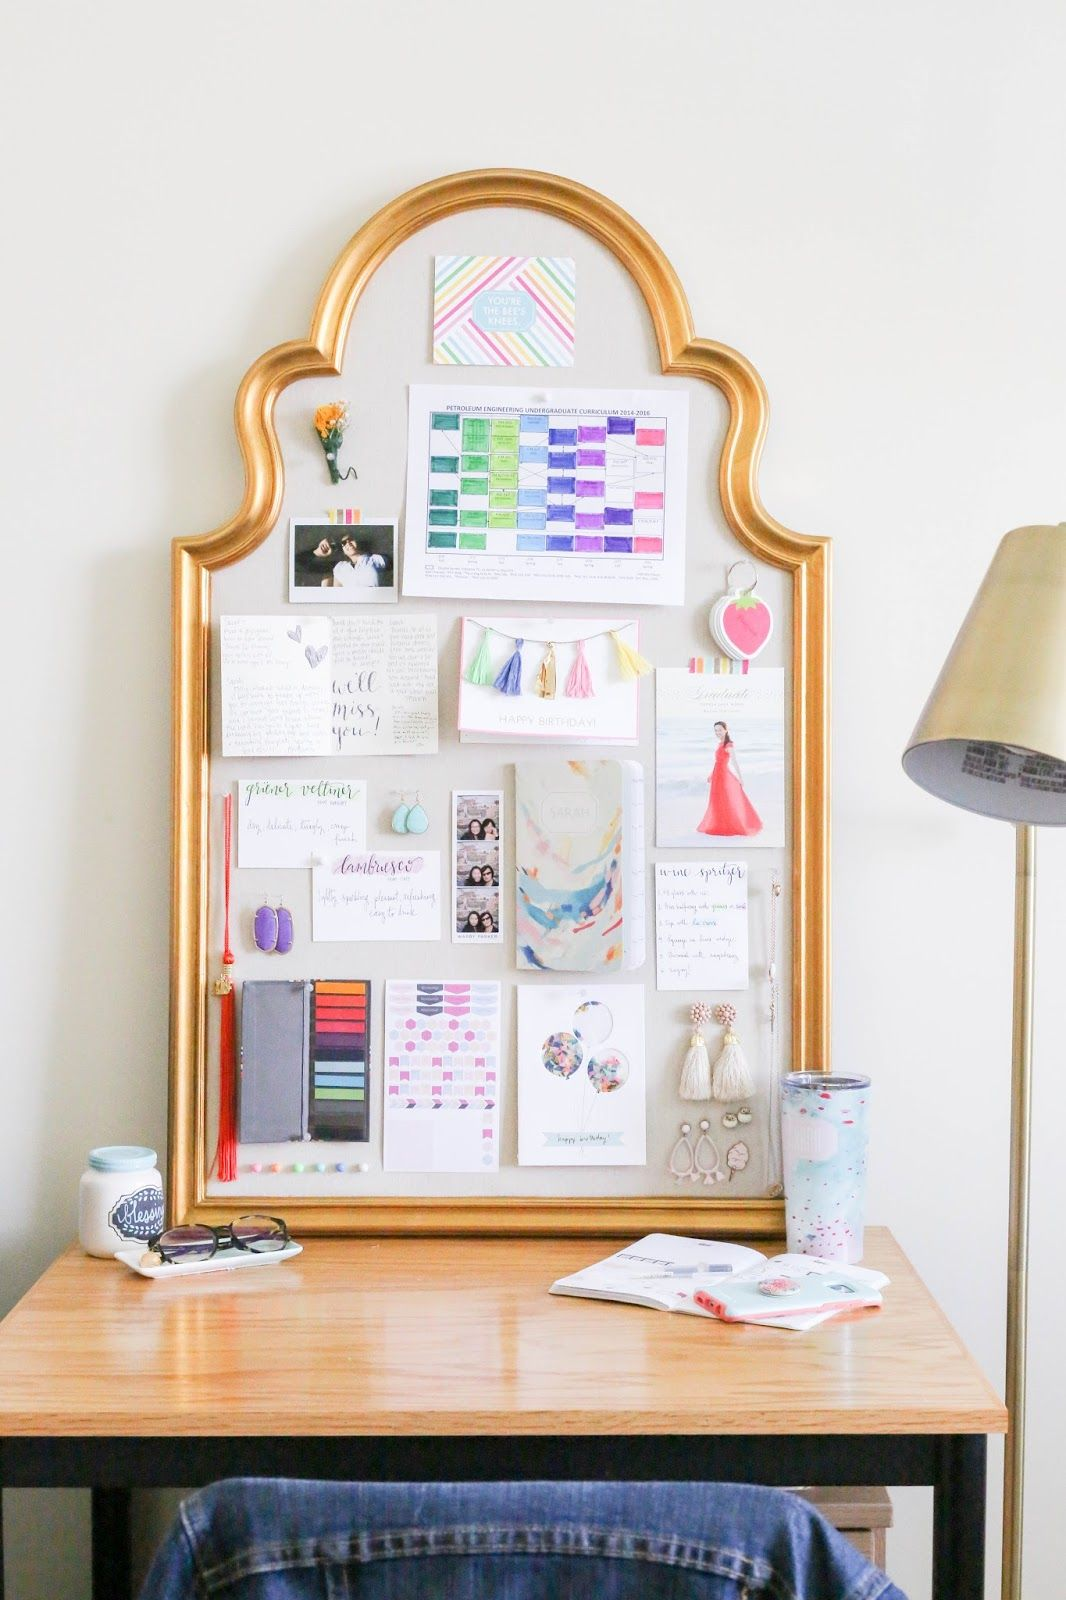 How To Decorate A Pinboard The Bella Insider Decor